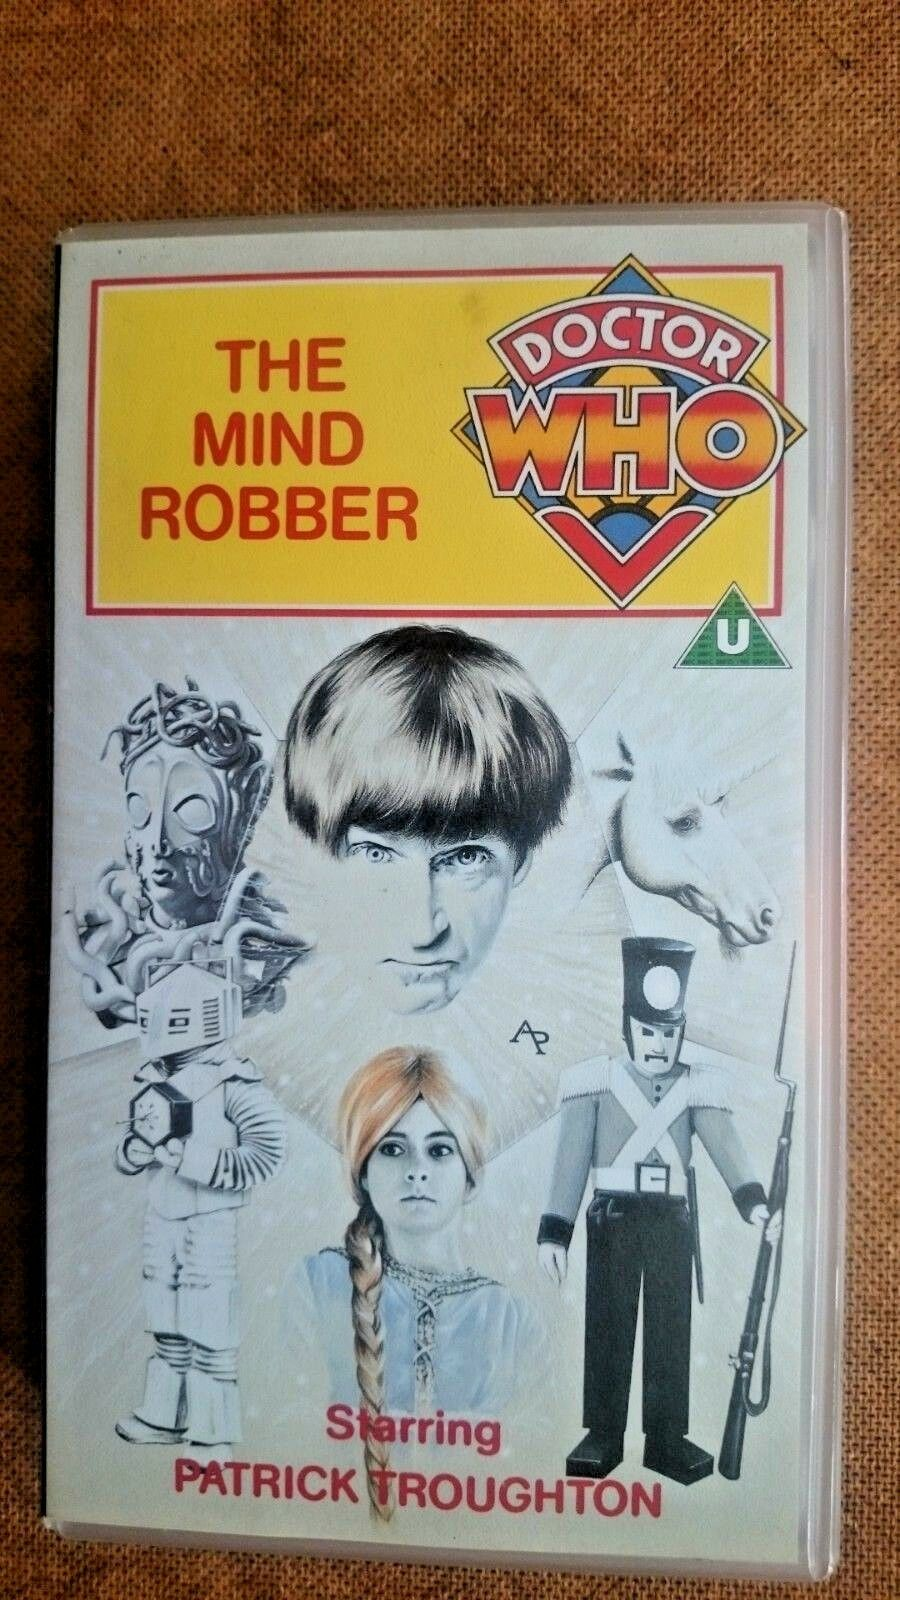 Doctor Who - The Mind Robber (VHS 1990) - Patrick Troughton